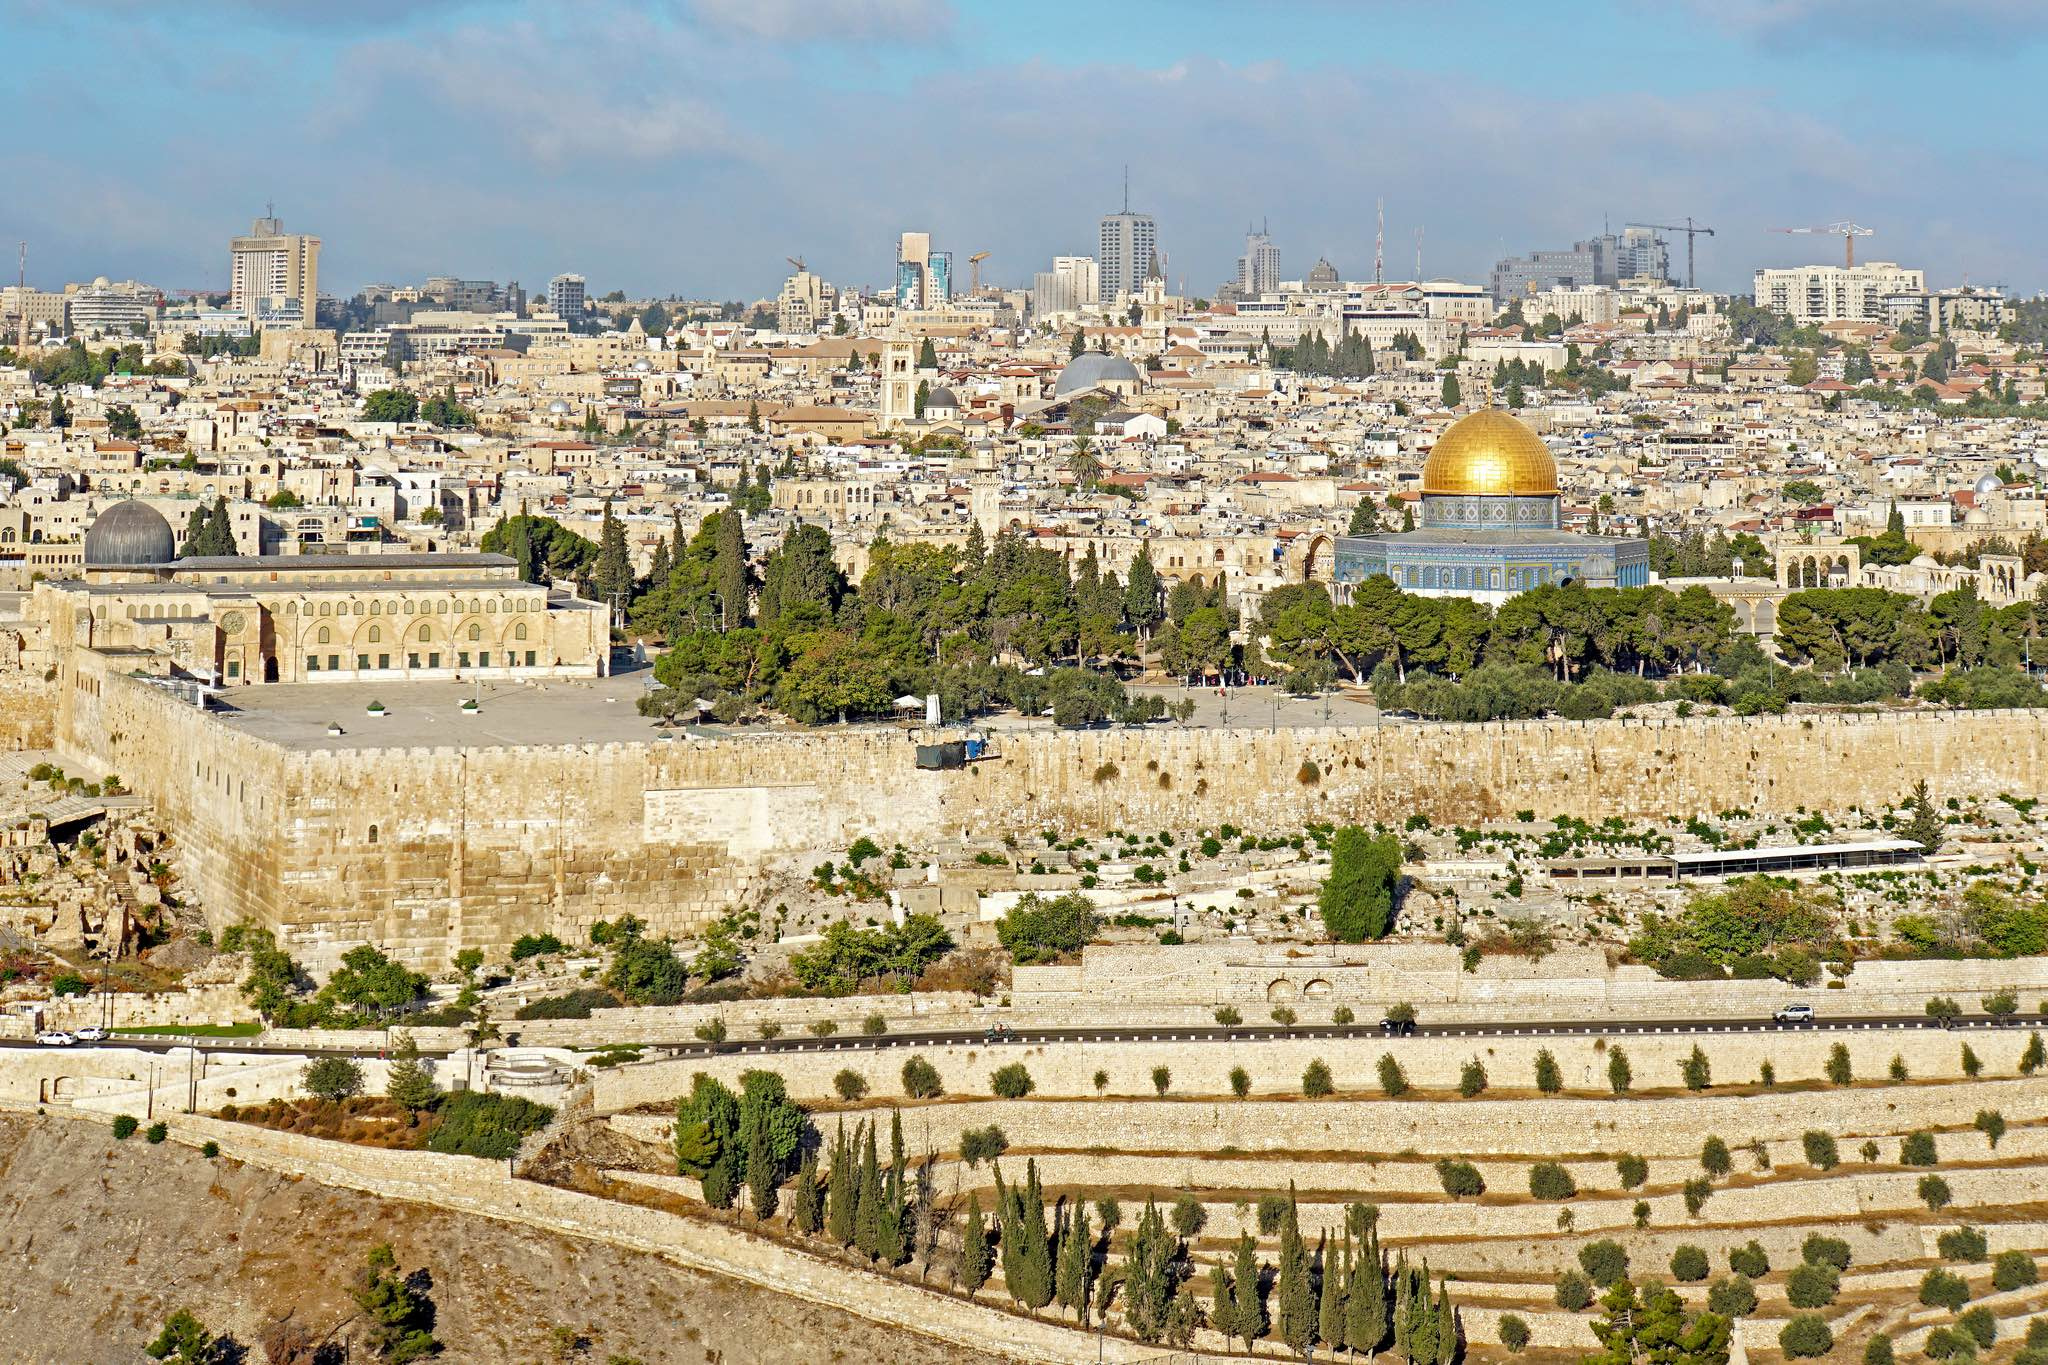 A view of Jerusalem. Credit: Dennis Jarvis/Flickr CC BY-SA 2.0